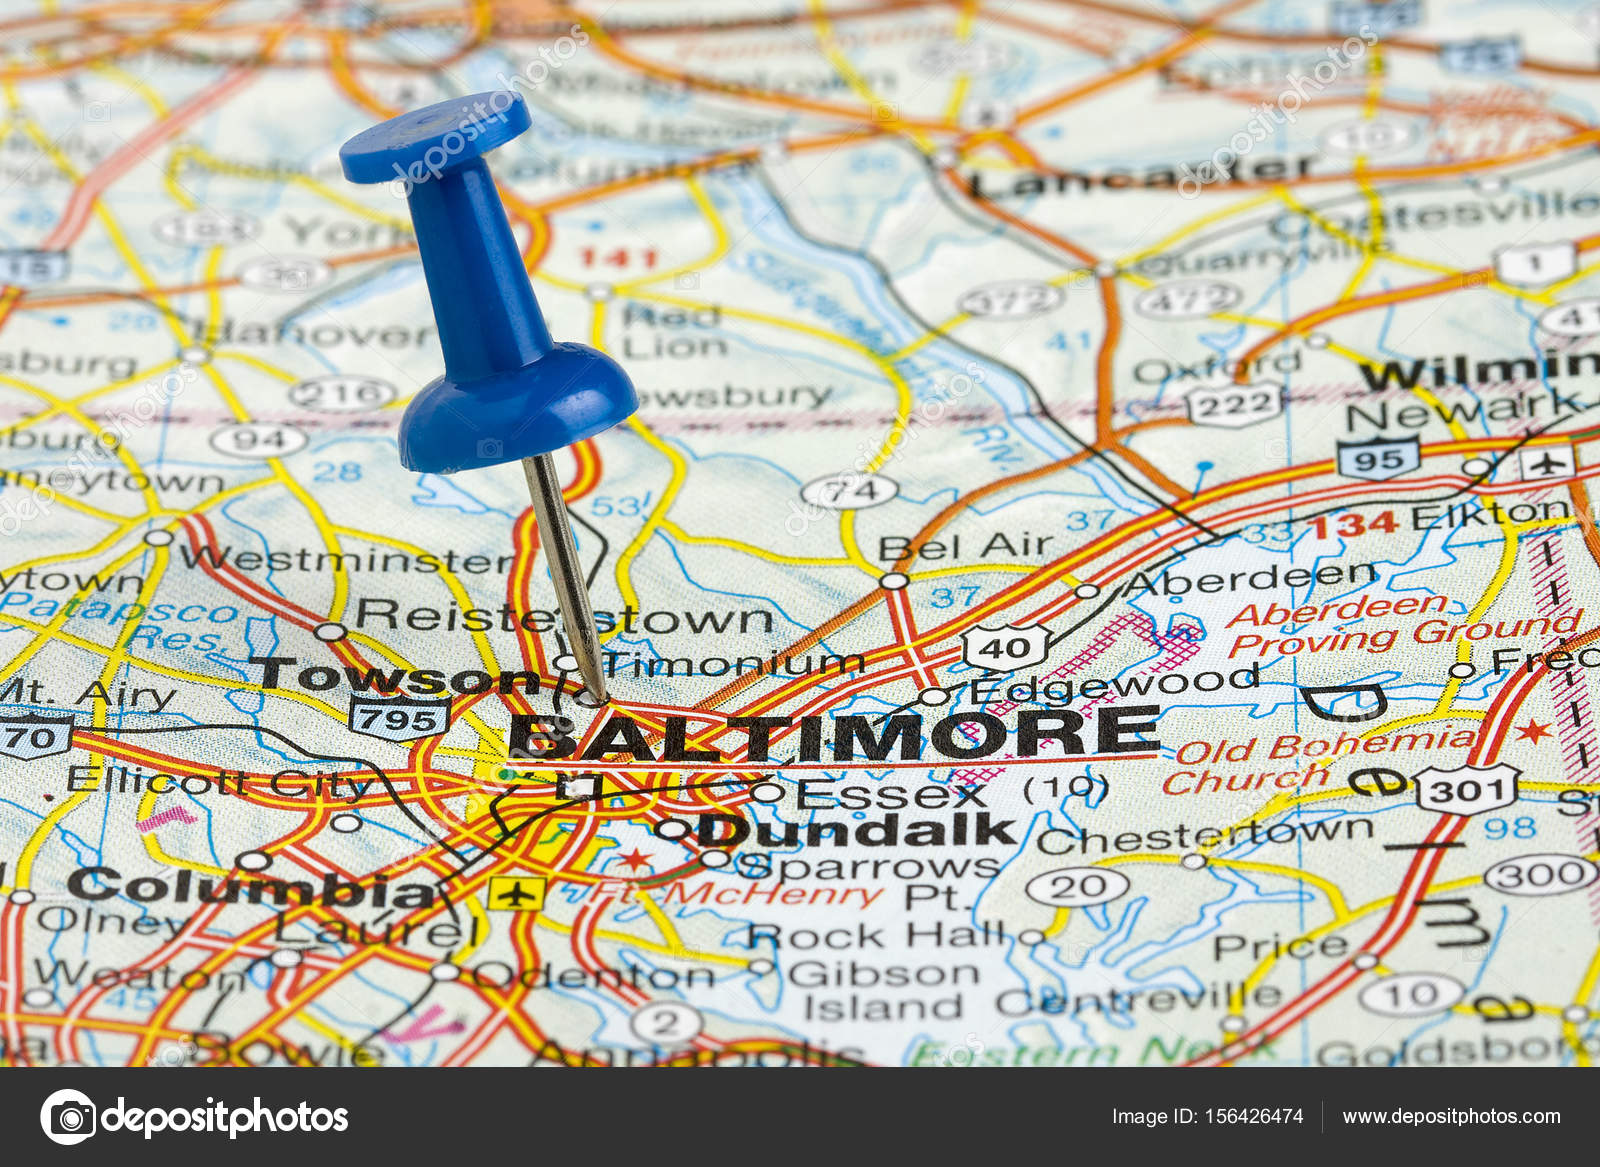 Baltimore Maryland USA Charm City highlighted with a blue push pin